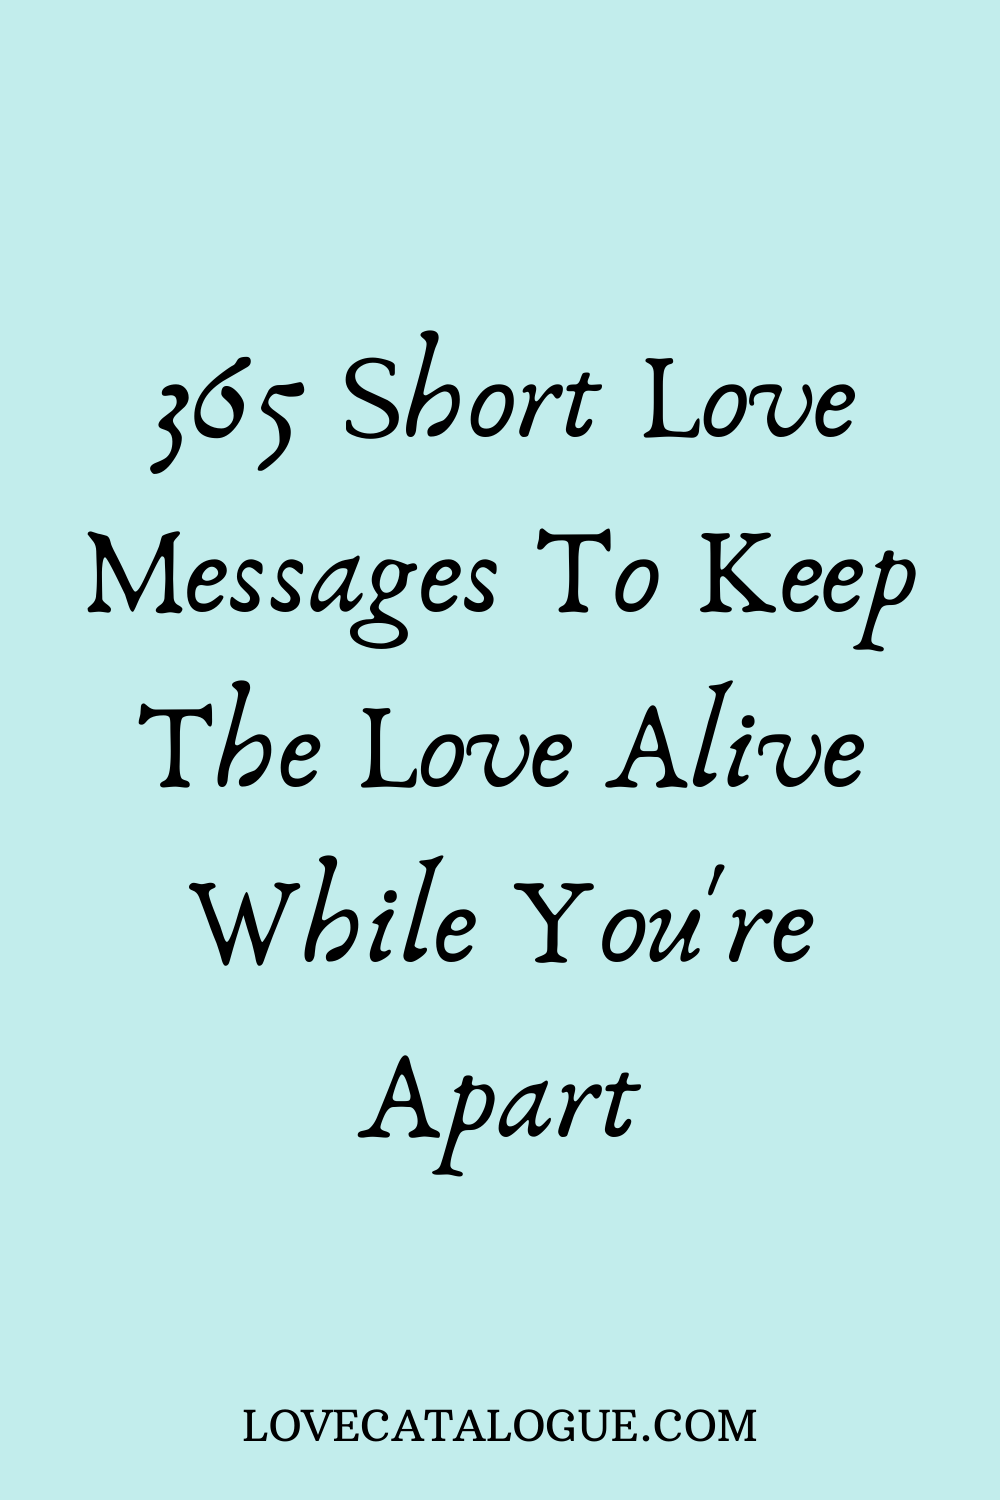 365 Short love messages to keep the love alive while you're apart